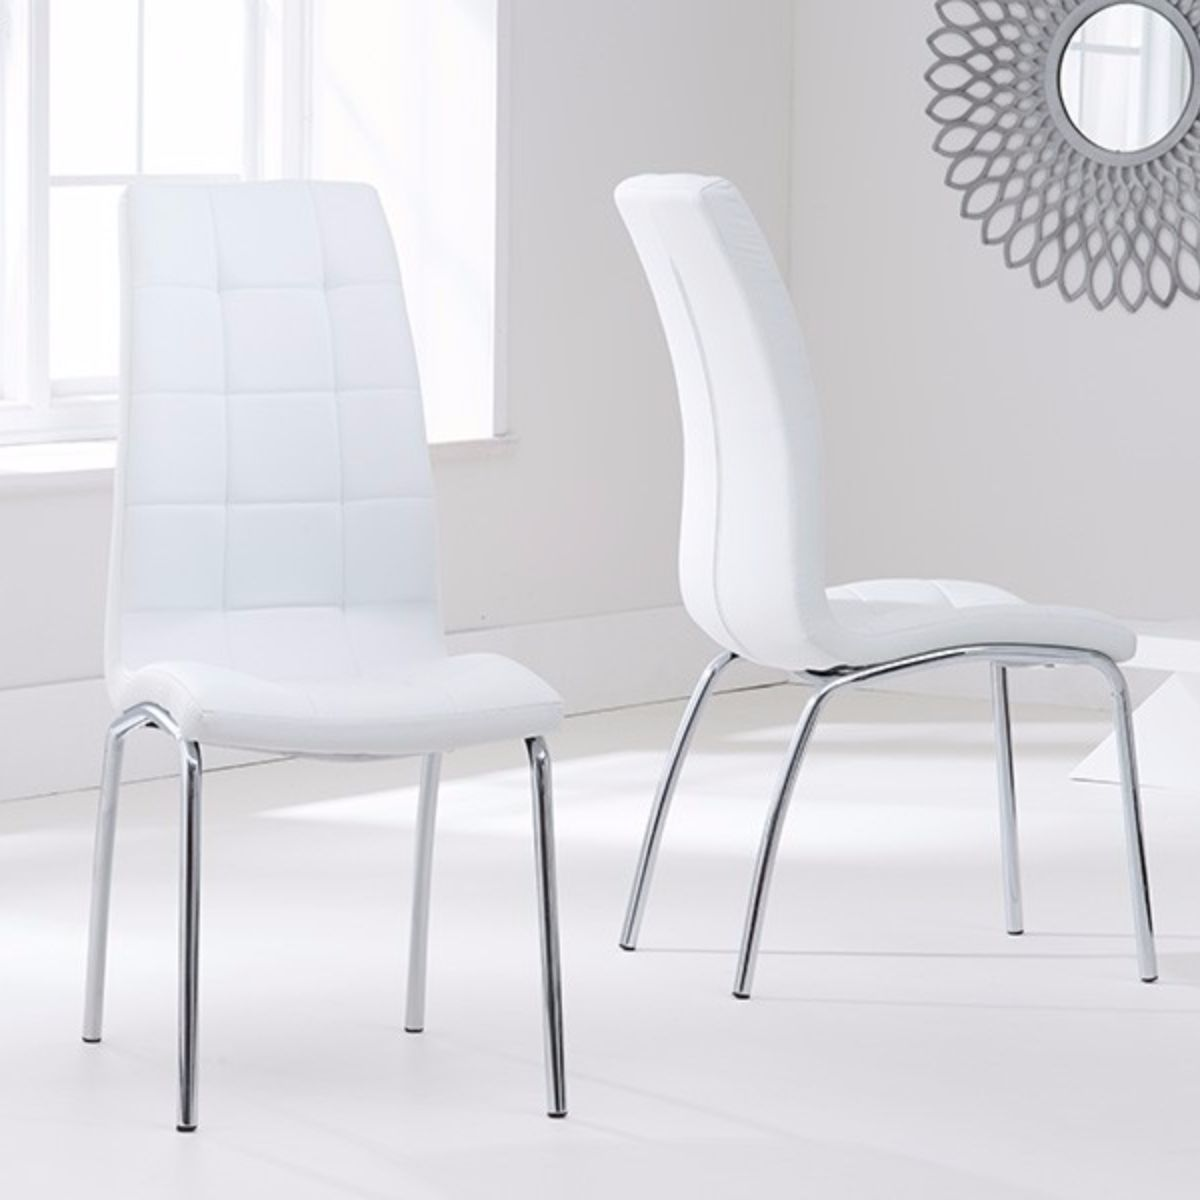 Munich Glass Dining Table with 4 Chairs (Chair Colour: Ivory)